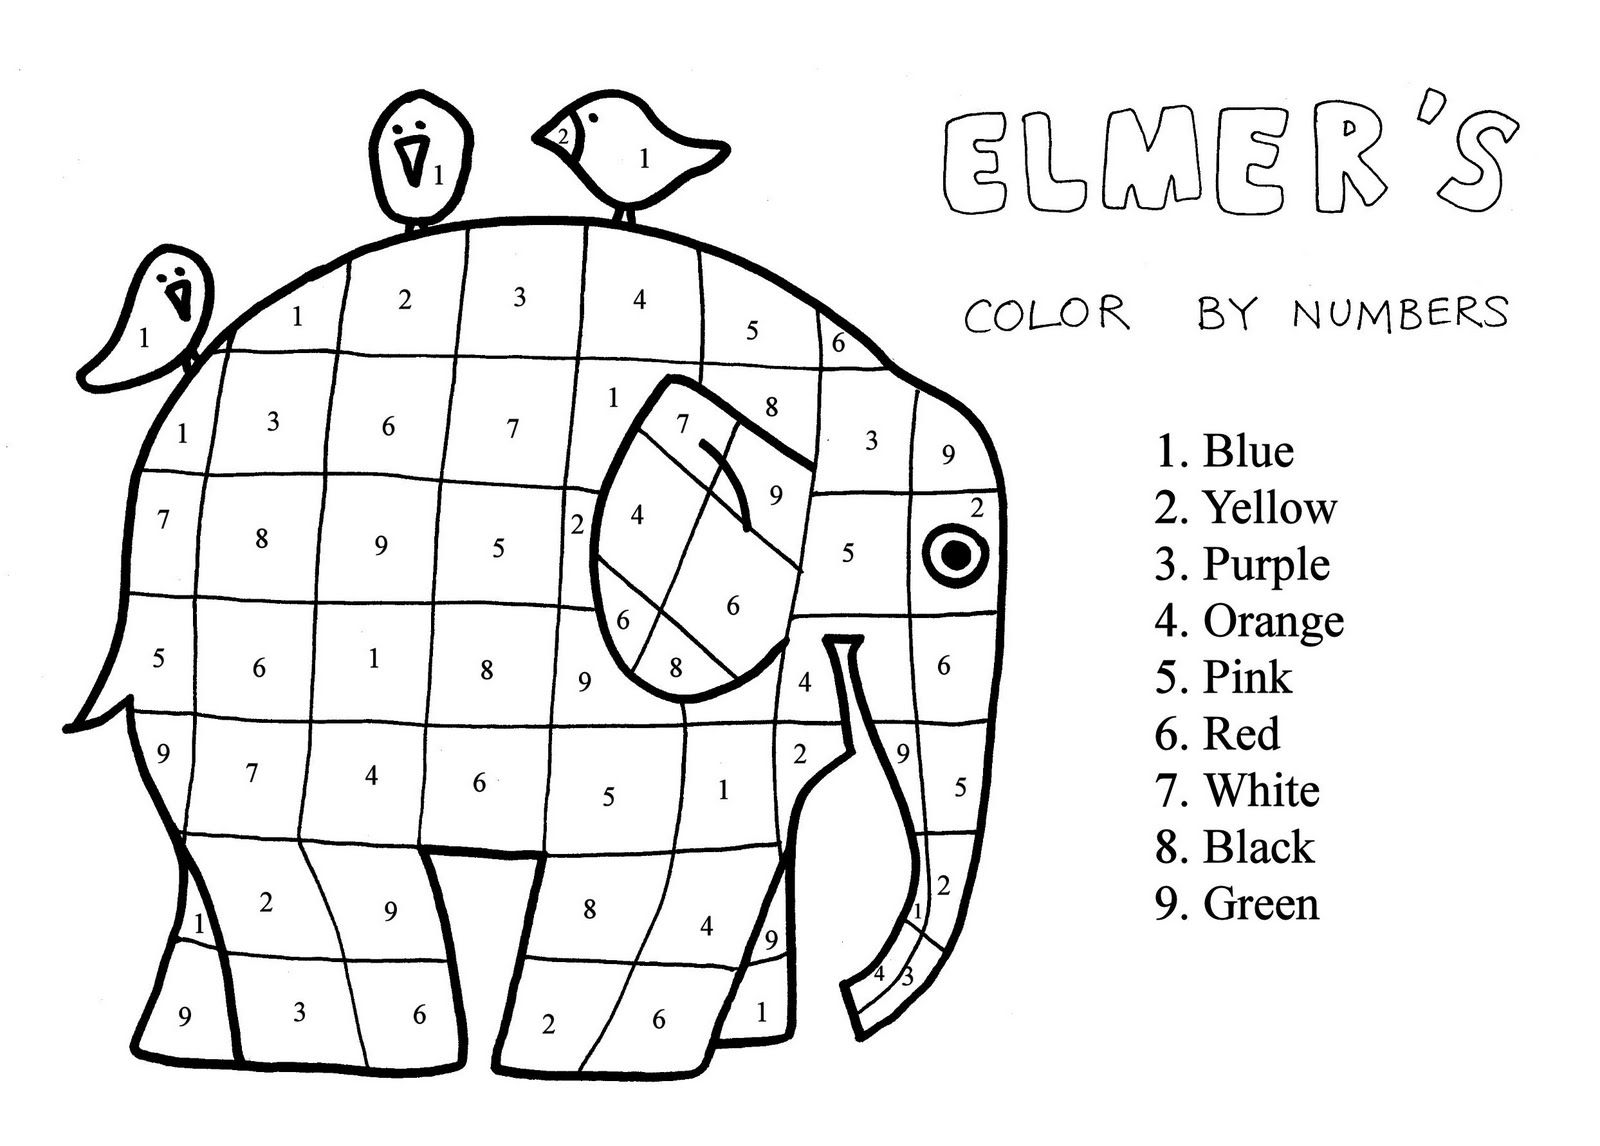 2nd Grade Elmer The Patchwork Elephant Coloring Page Extra Project Color Matching